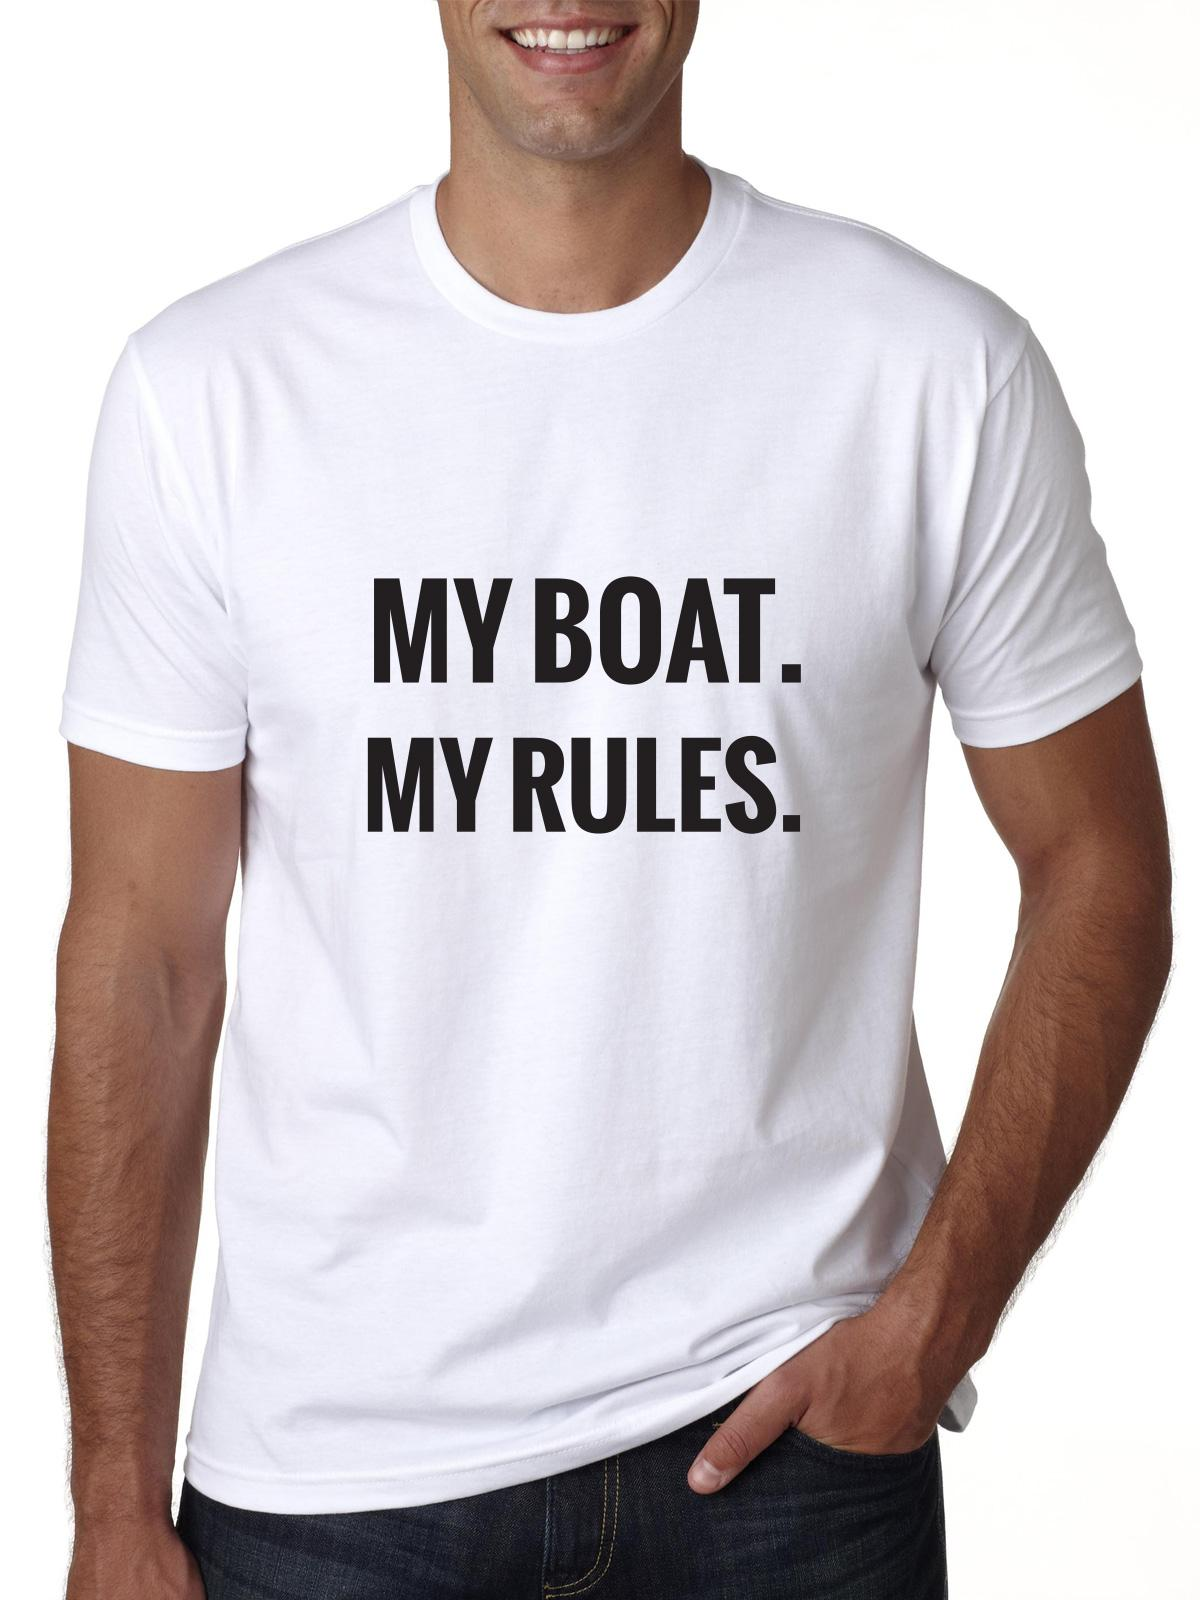 Hilarious My Boat. My Rules. Text Based Men's T-Shirt by Hollywood Thread